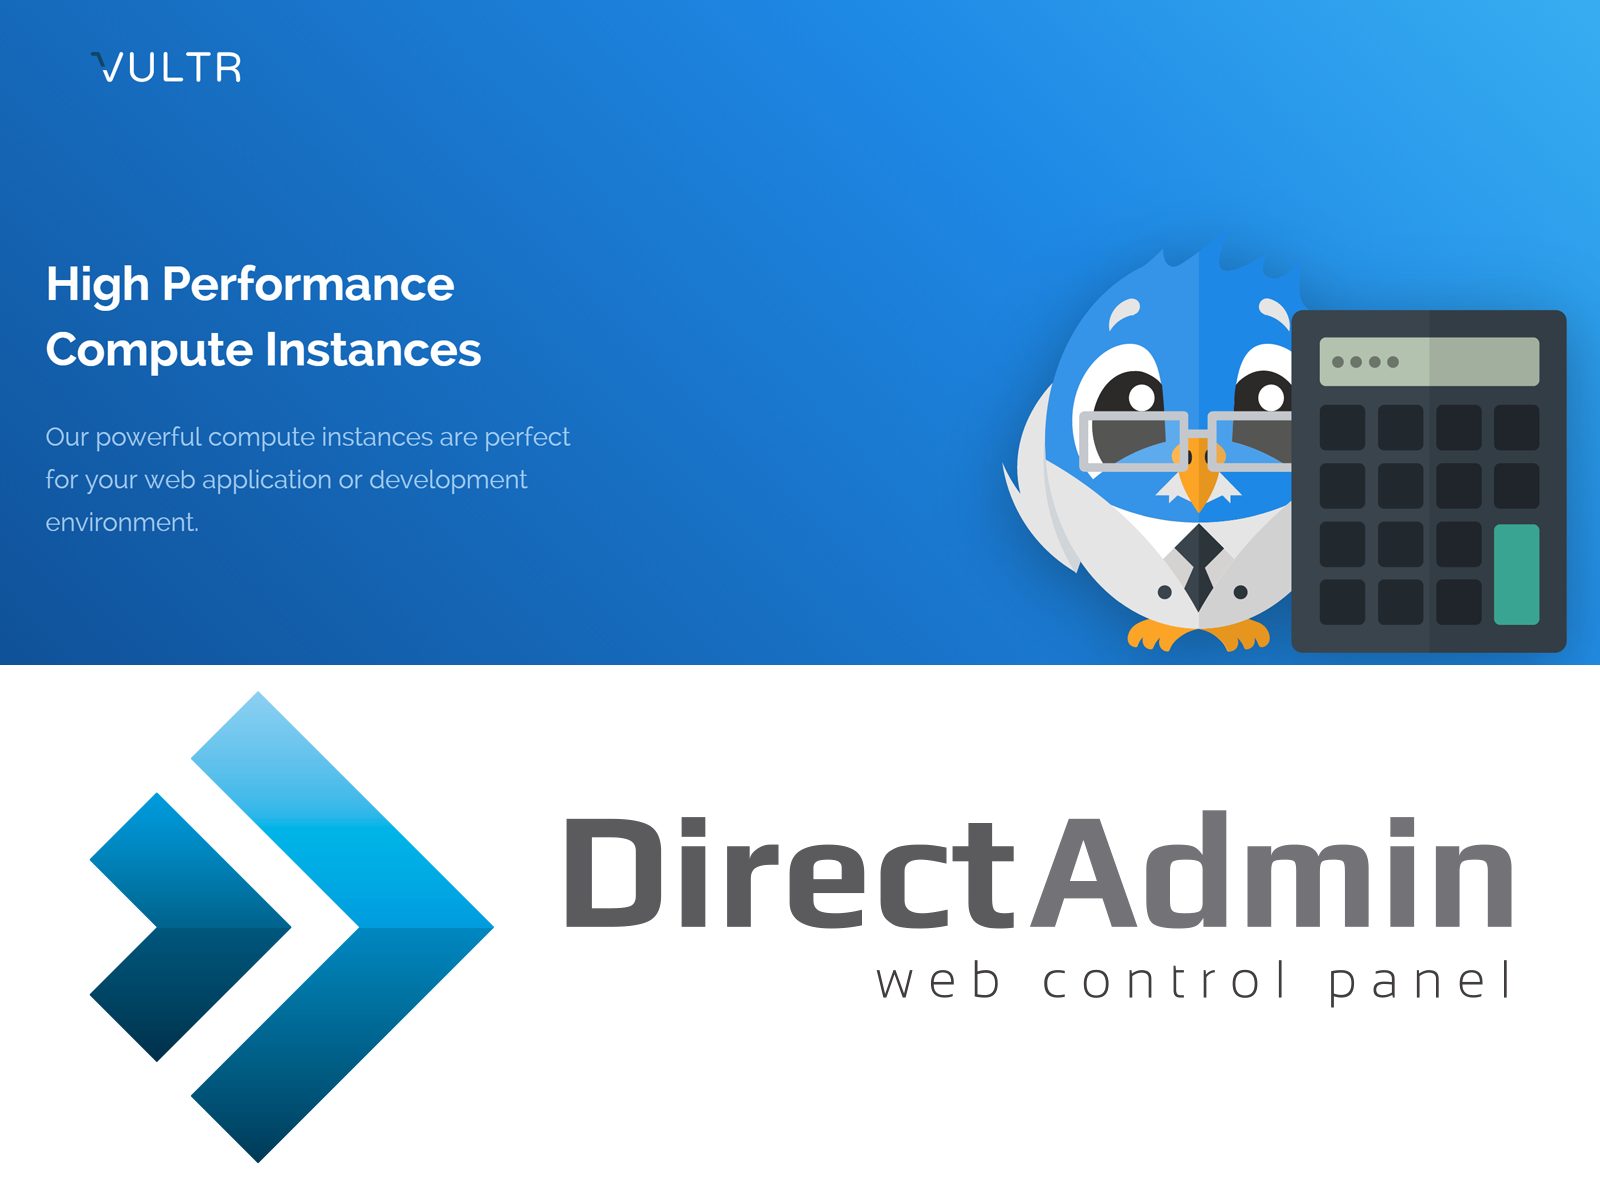 How to setup DirectAdmin on Vultr cloud server